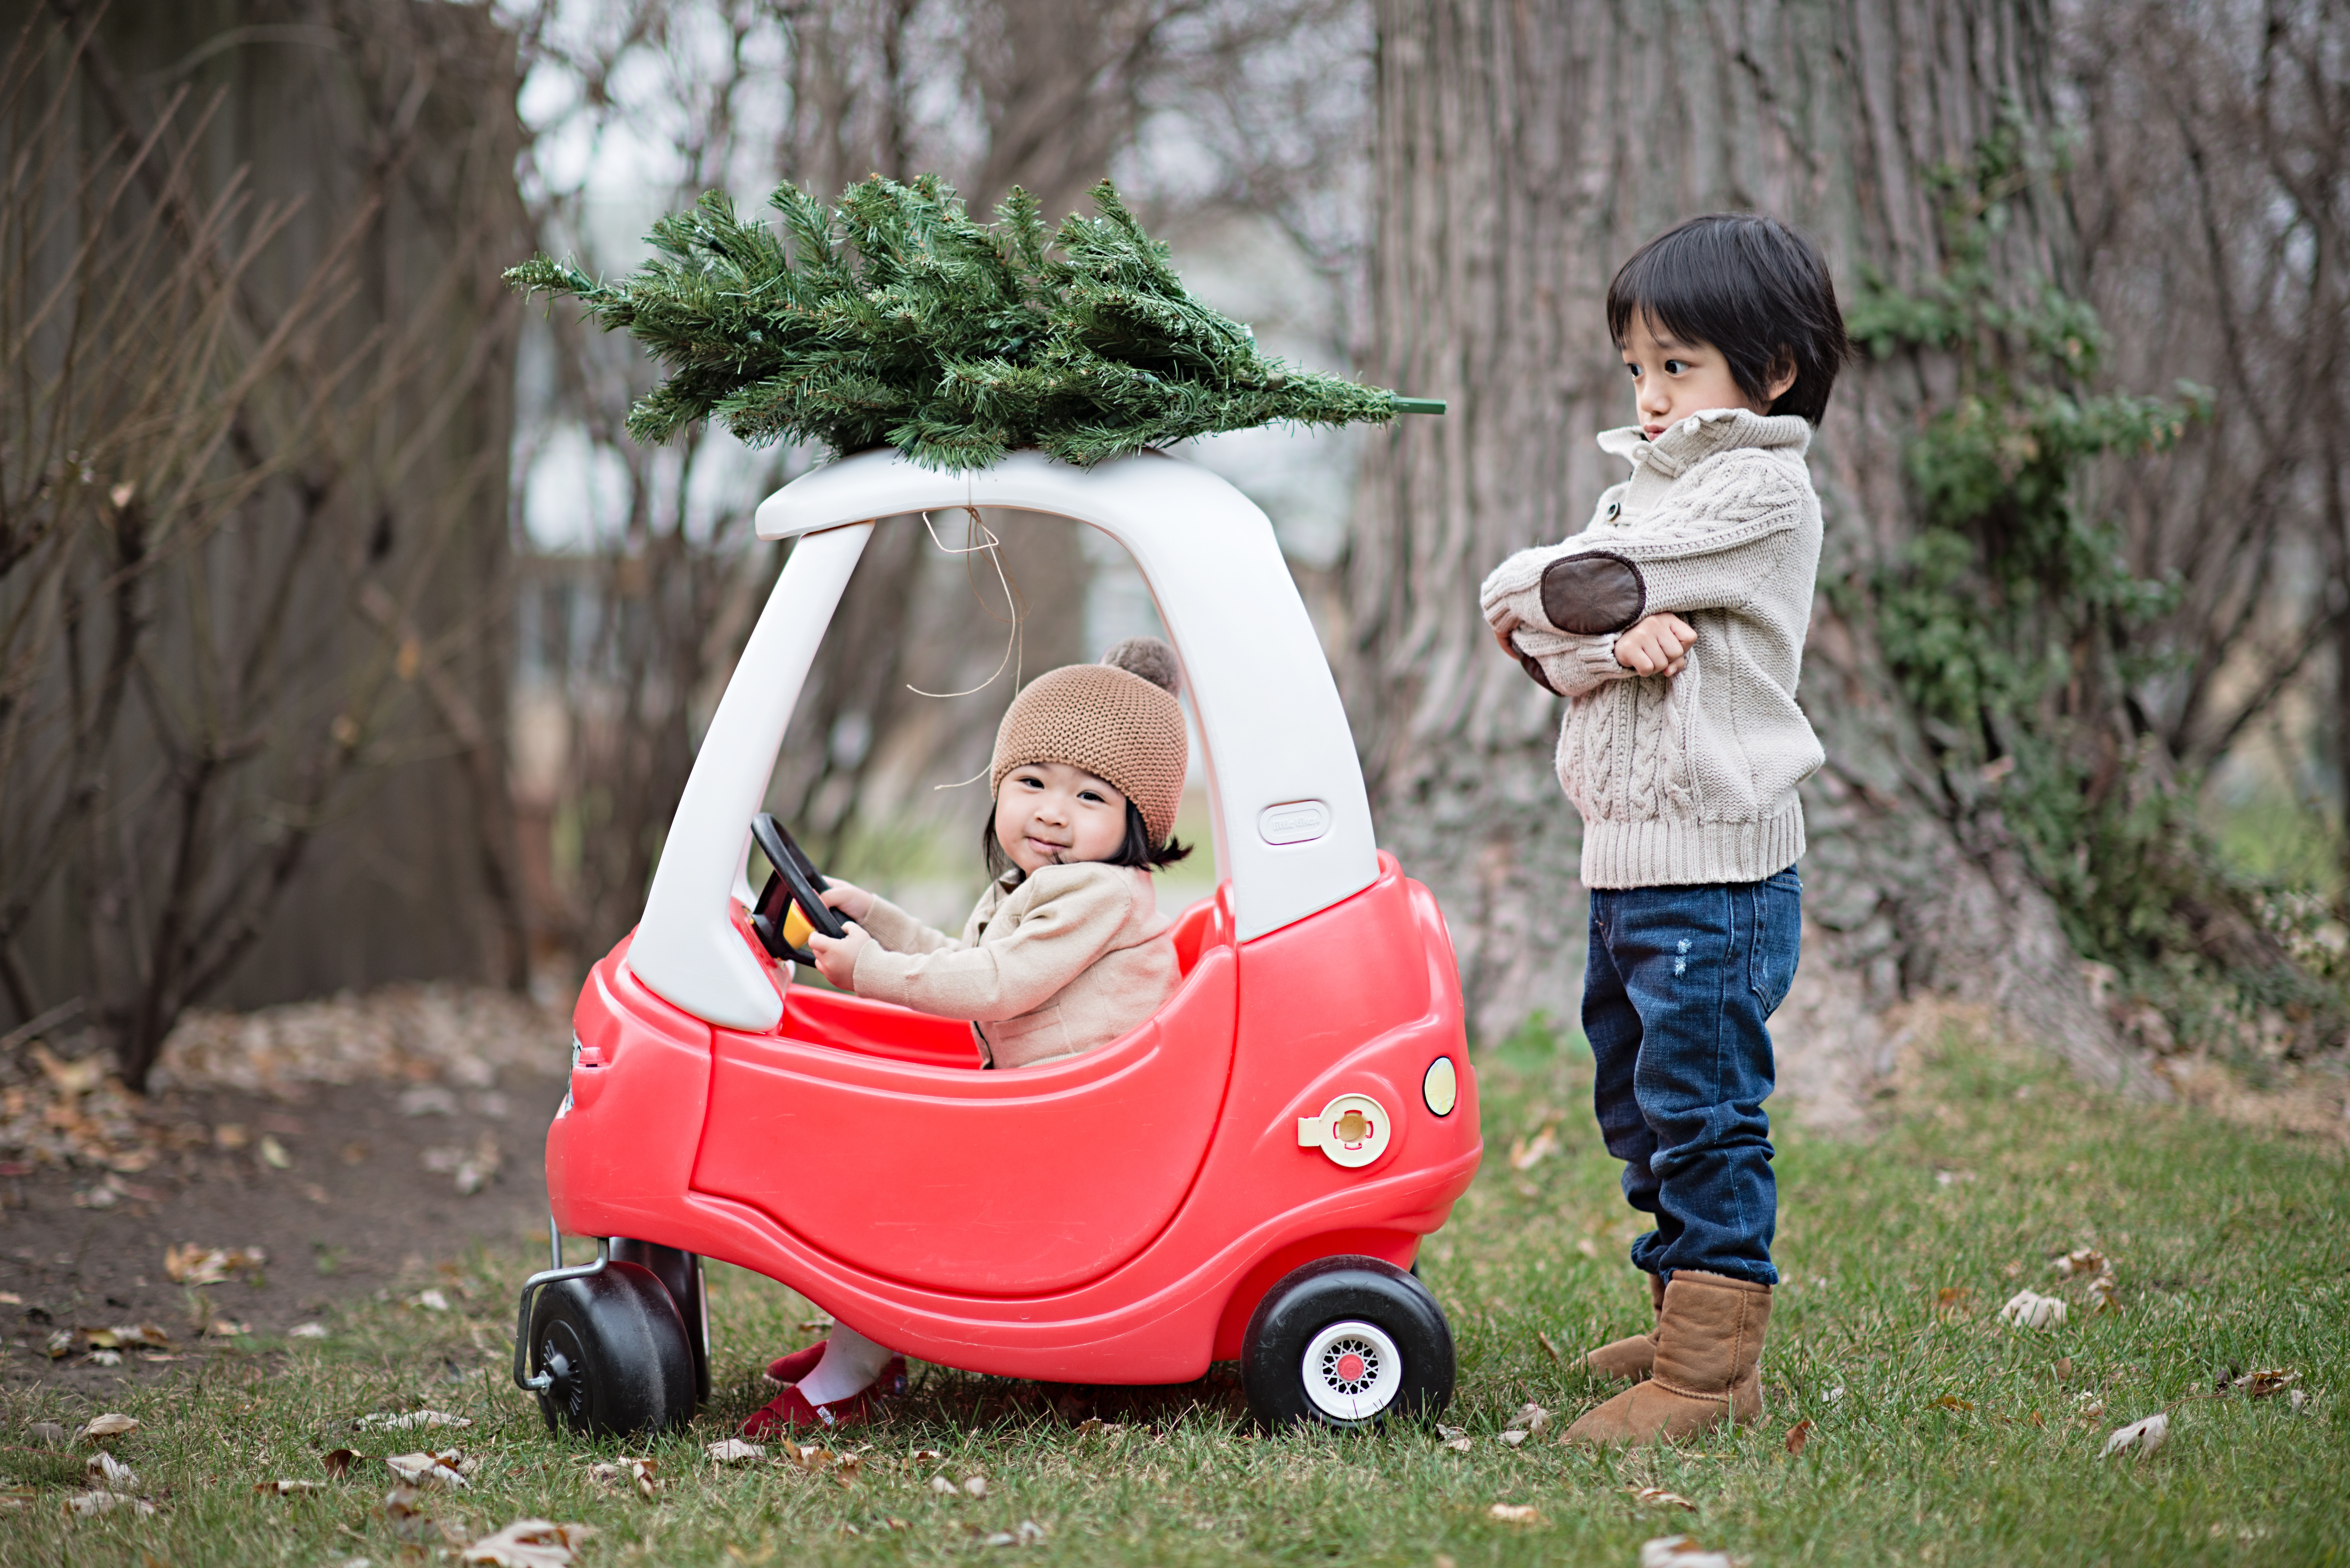 Fun And Creative Holiday Cards And Family Photo Ideas